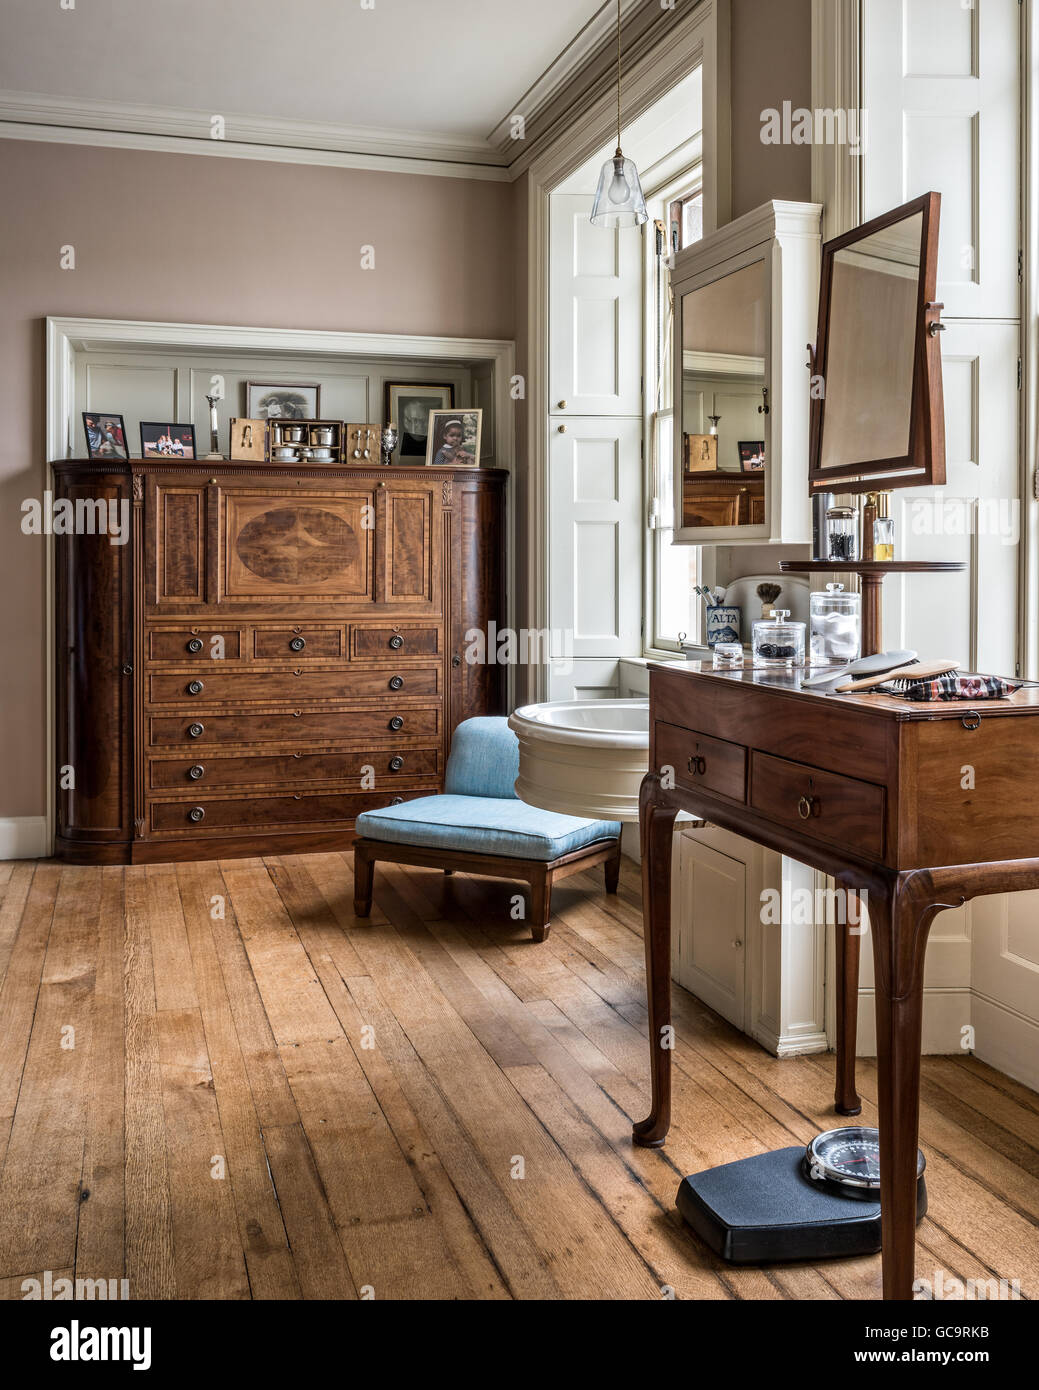 Porcelain hand-basin and a Whytock and Reid dressing chest in a spacious dressing room. - Stock Image